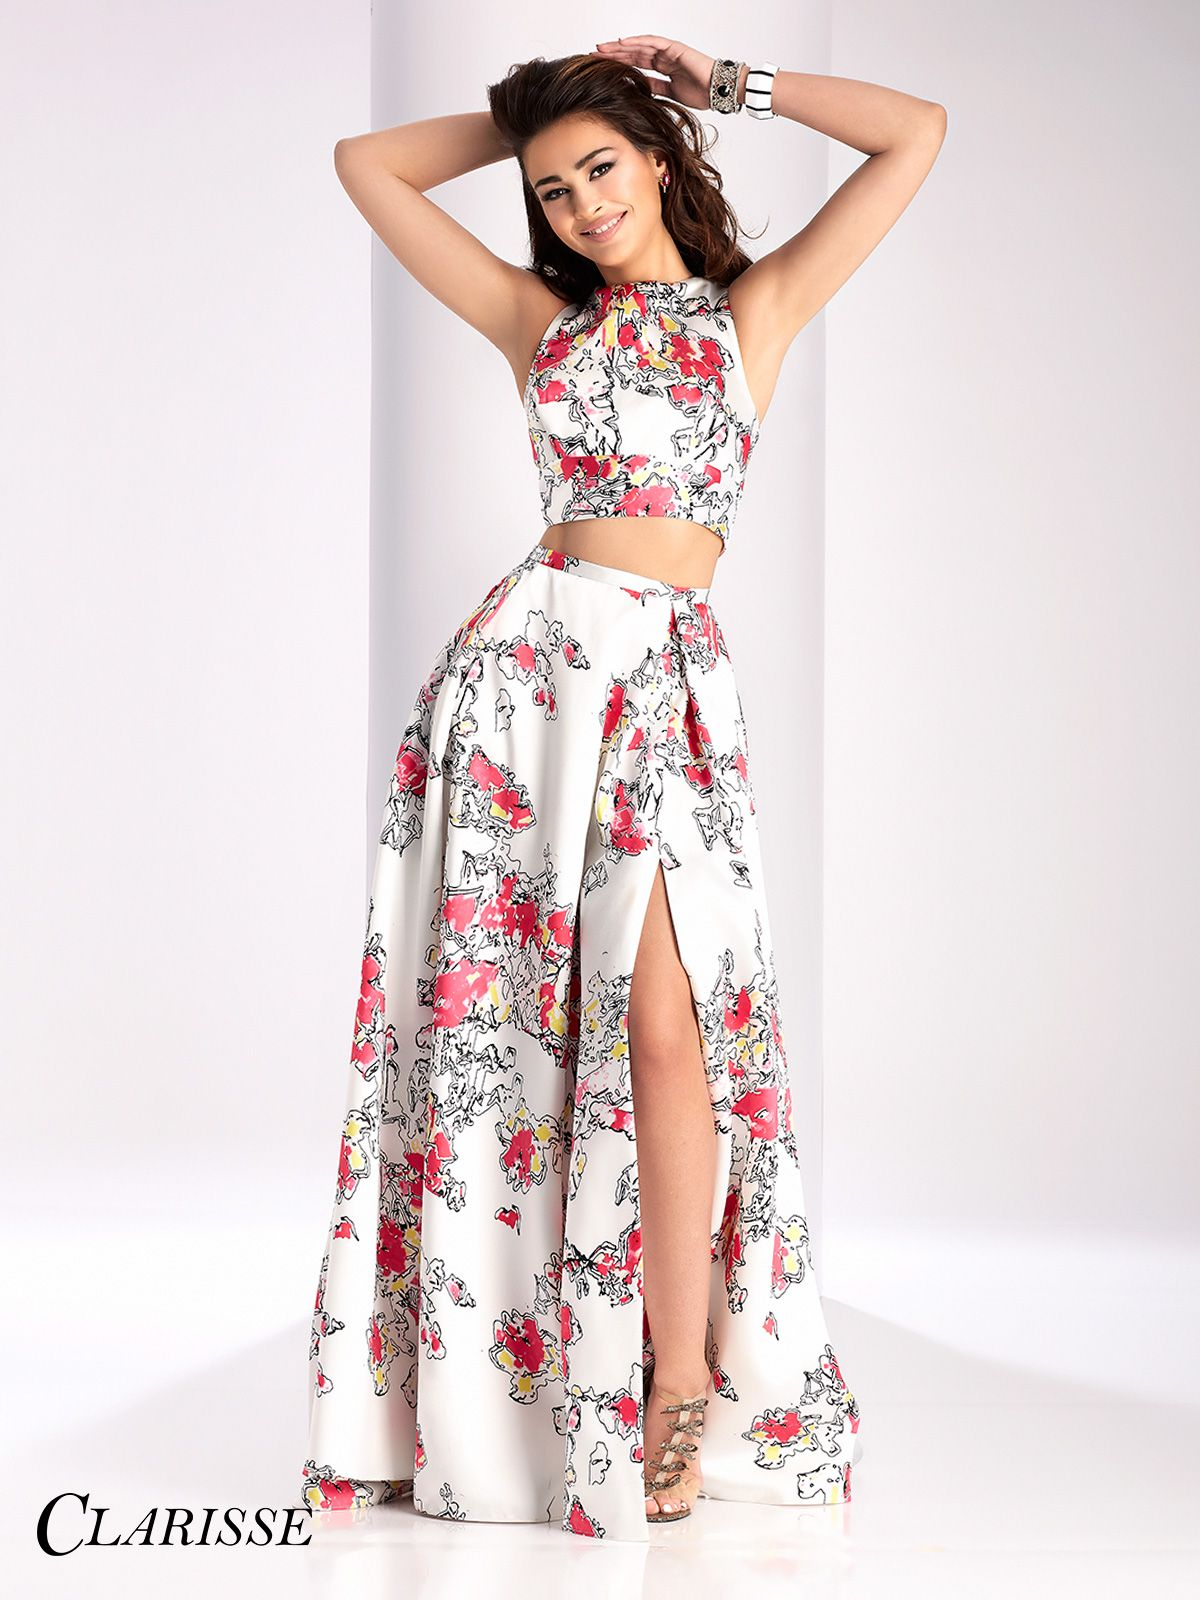 Clarisse Two Piece Print Prom Dress 3002 | Unique prom dresses ...